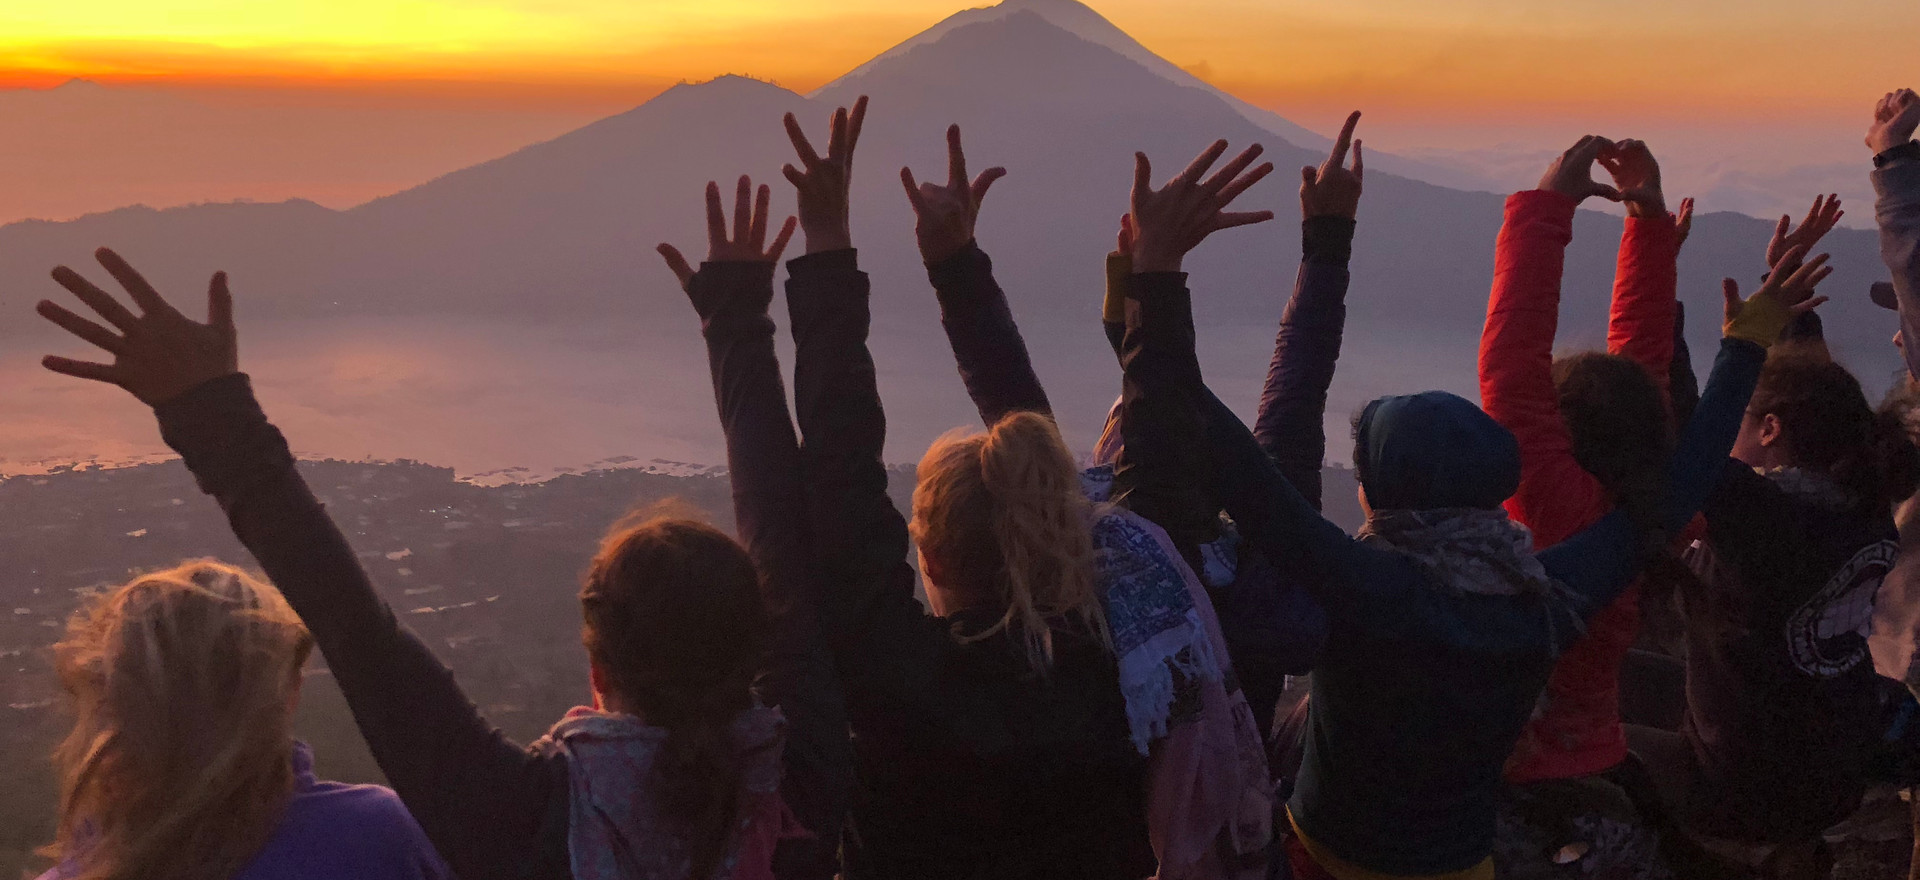 Bali Yoga Retreat Sunrise Volcano Hike.j